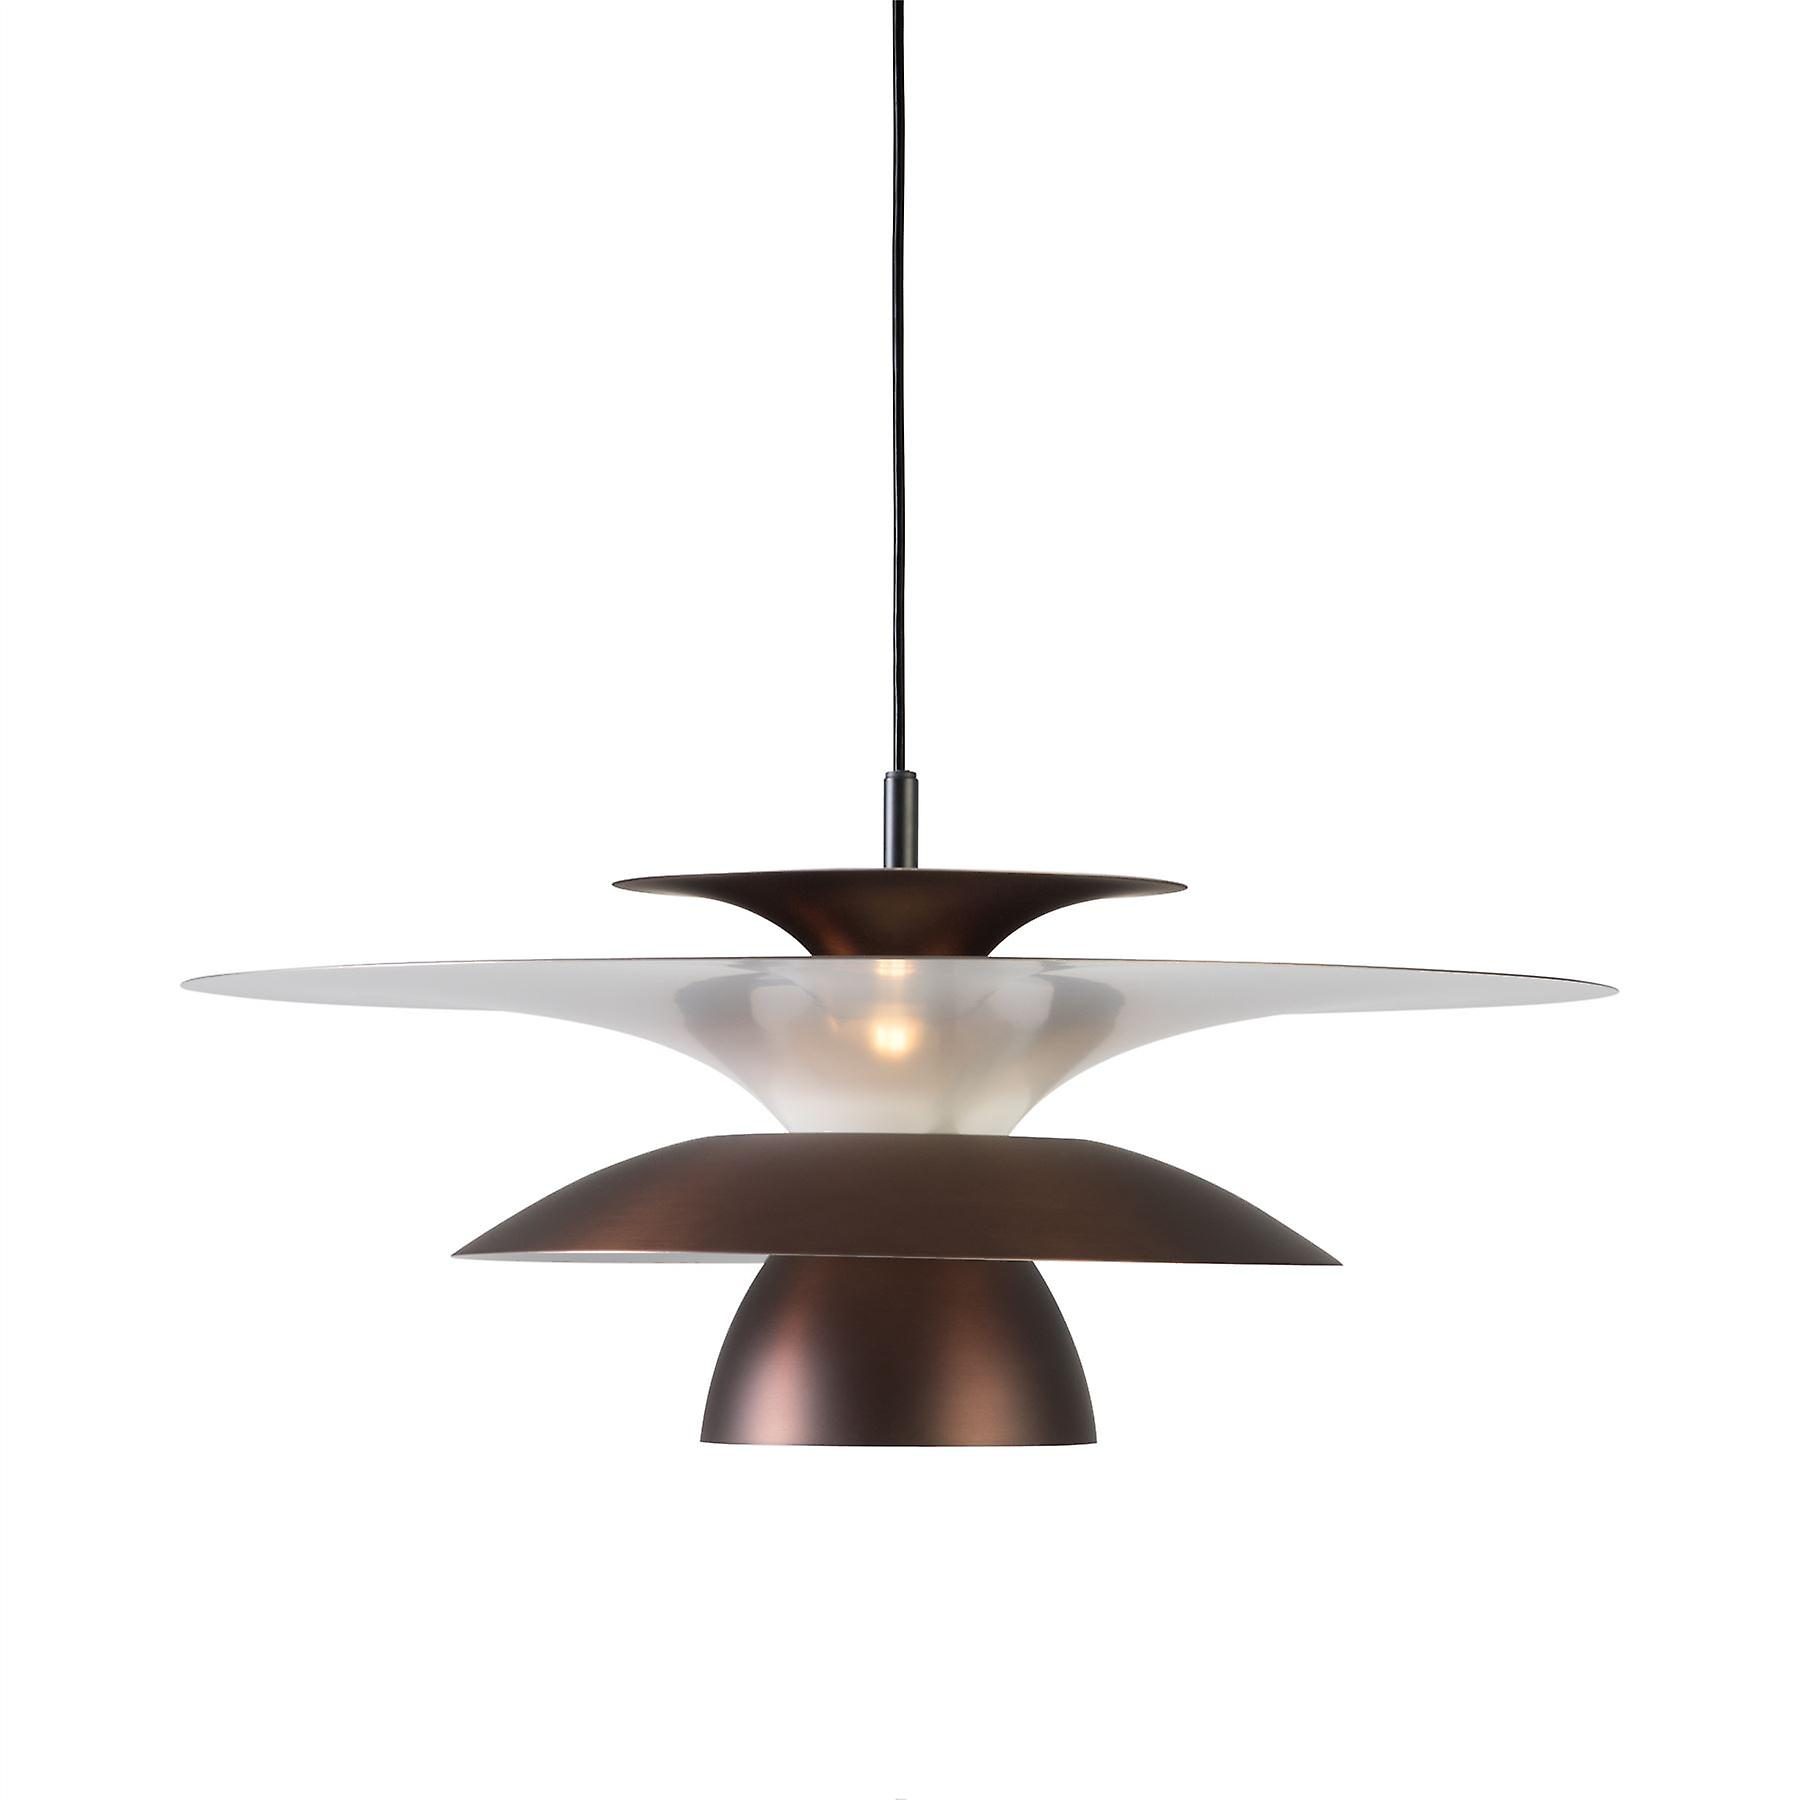 Belid - Picasso LED Pendant Light Oxide Finish 1417107